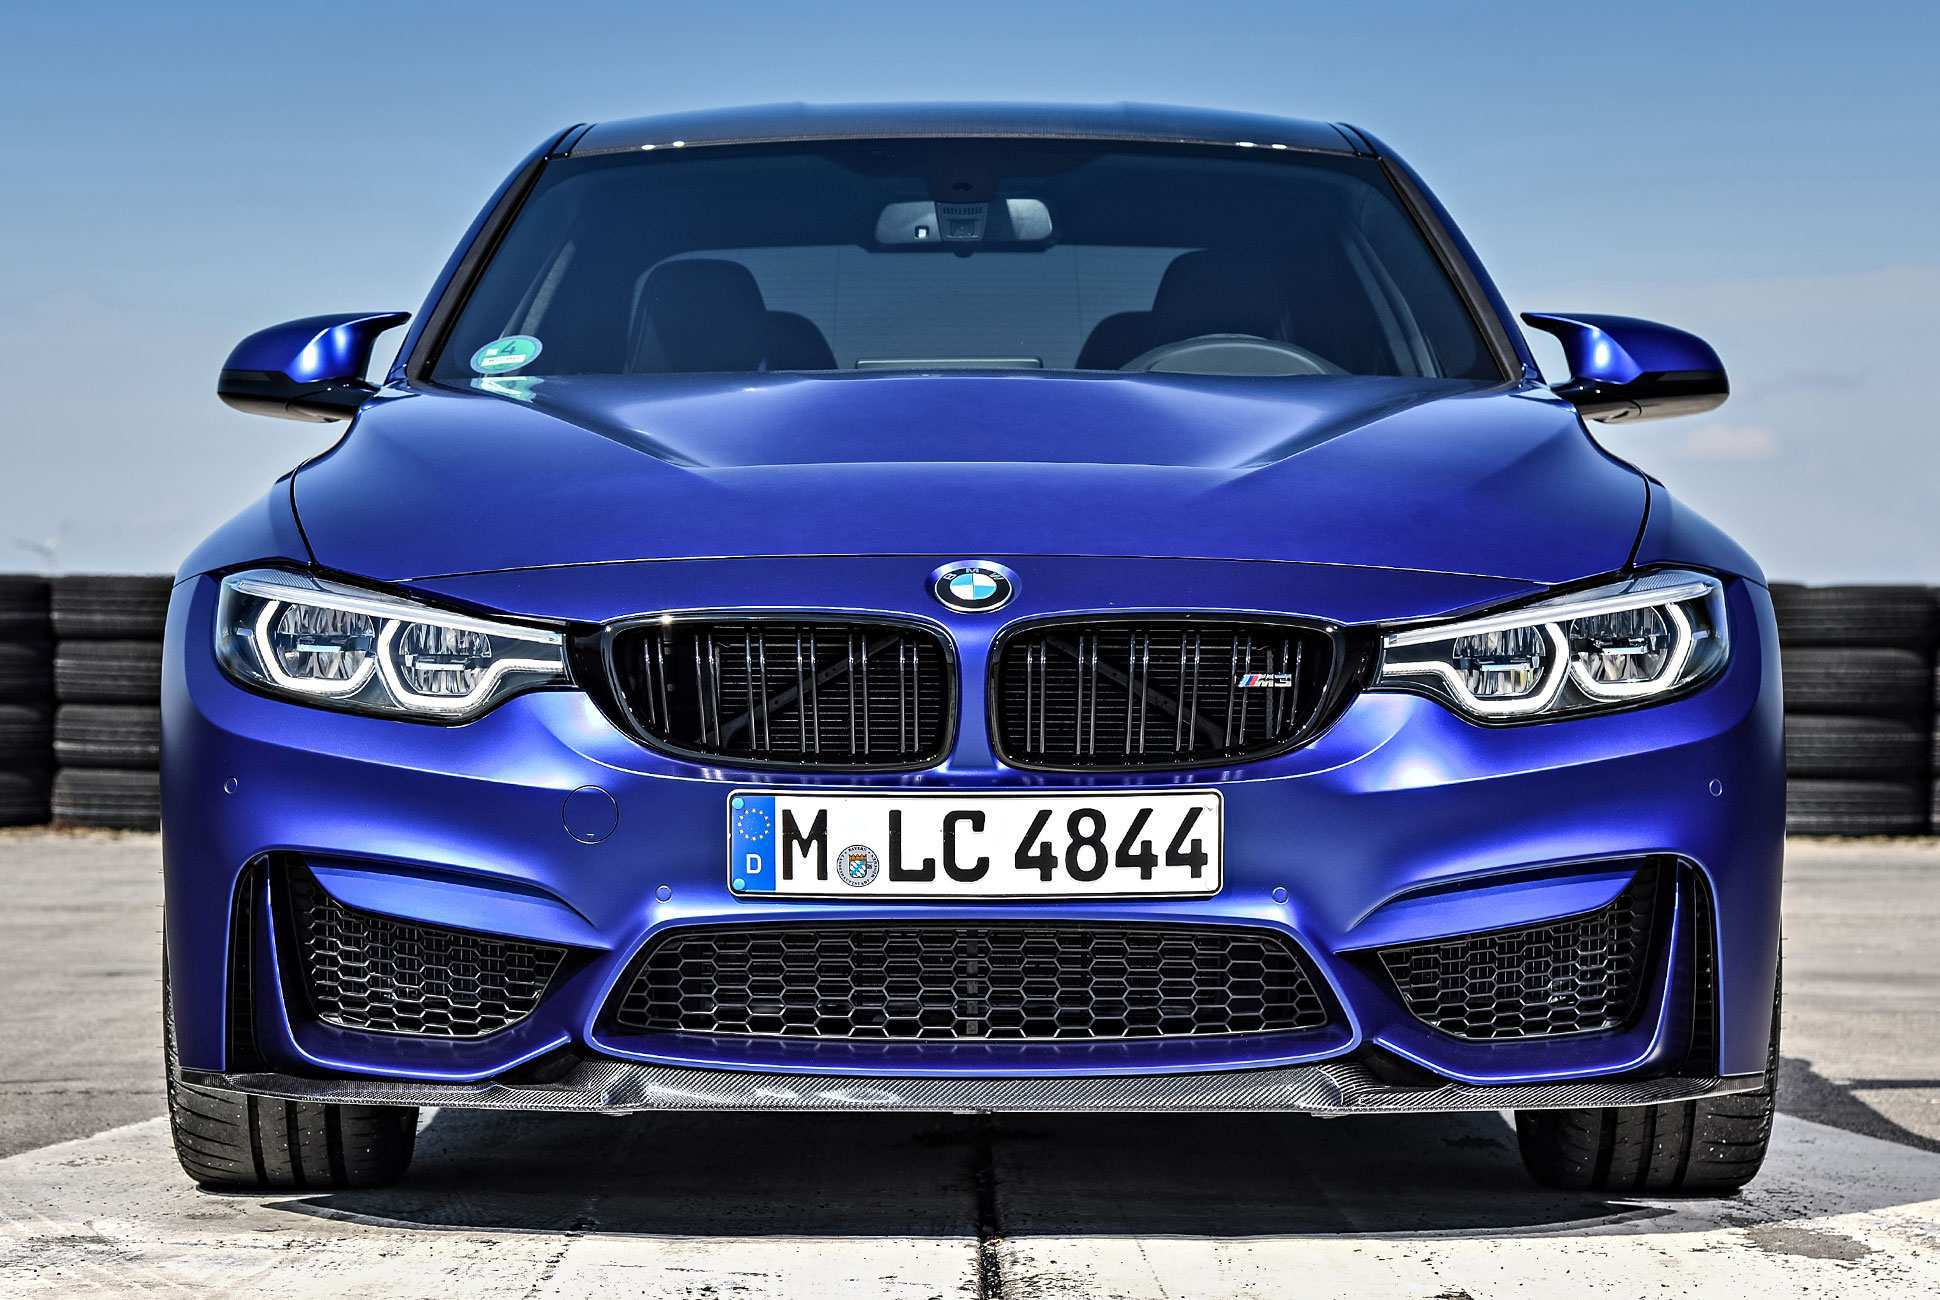 80 Best Review 2020 BMW X3M Ordering Guide Specs and Review with 2020 BMW X3M Ordering Guide